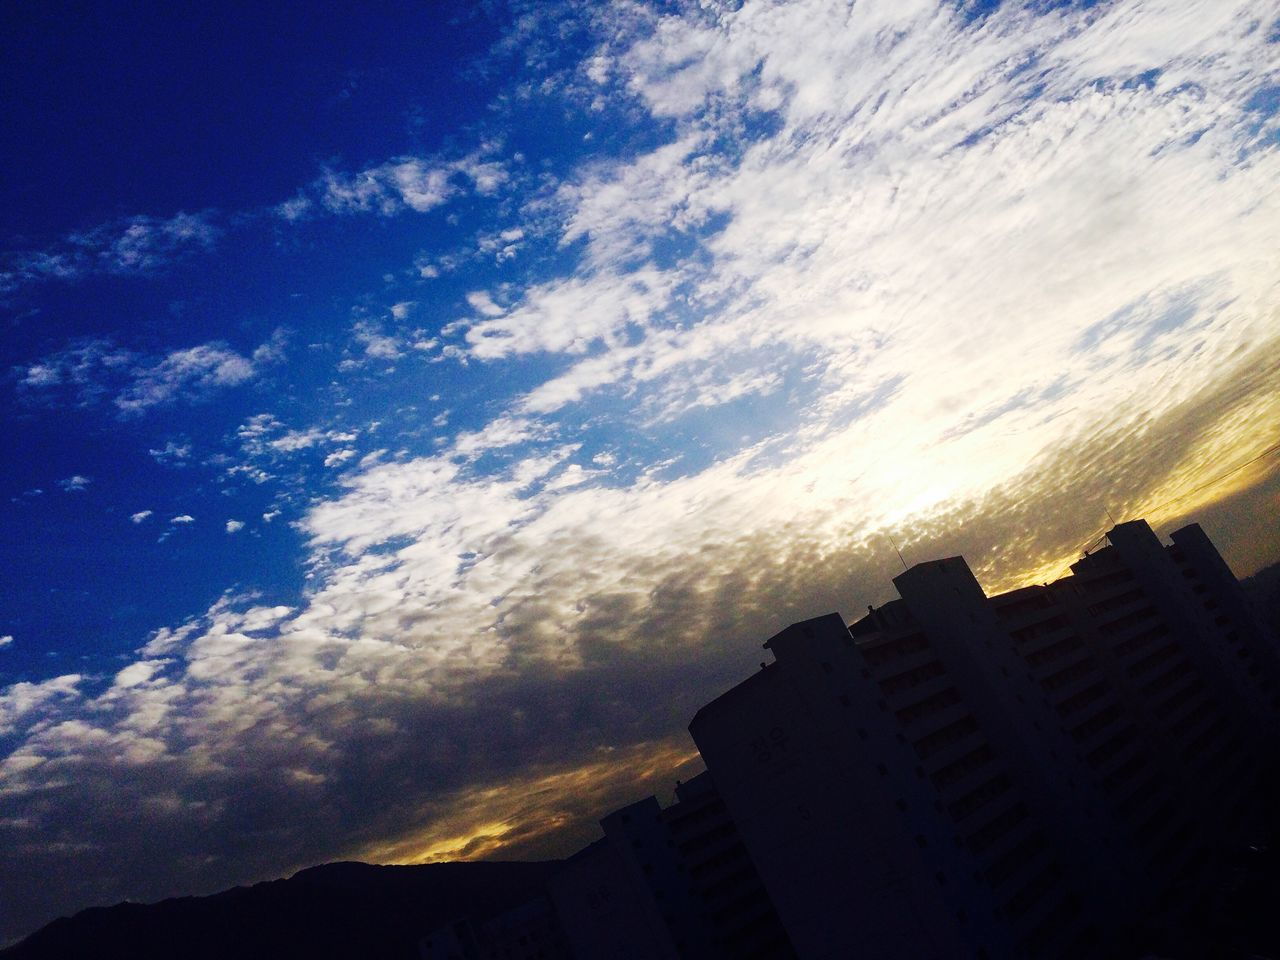 sky, no people, architecture, building exterior, modern, nature, city, outdoors, cityscape, day